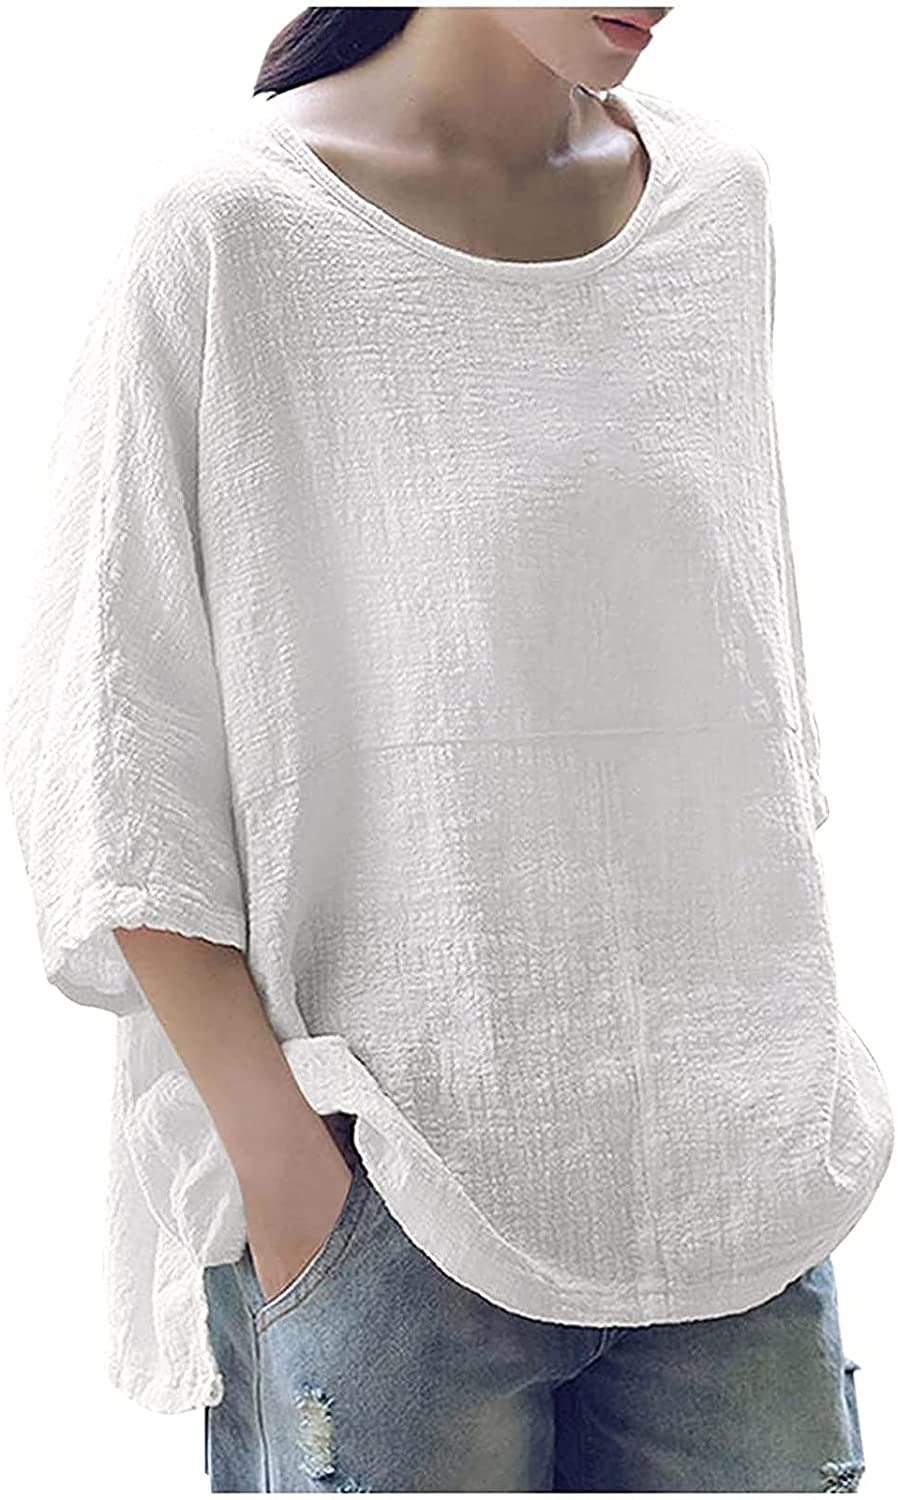 Women Summer Plus Size Blouse 3/4 Sleeve Tops Casual Loose T Shirts Solid Color Pullover Crew Neck Side Split Tunic